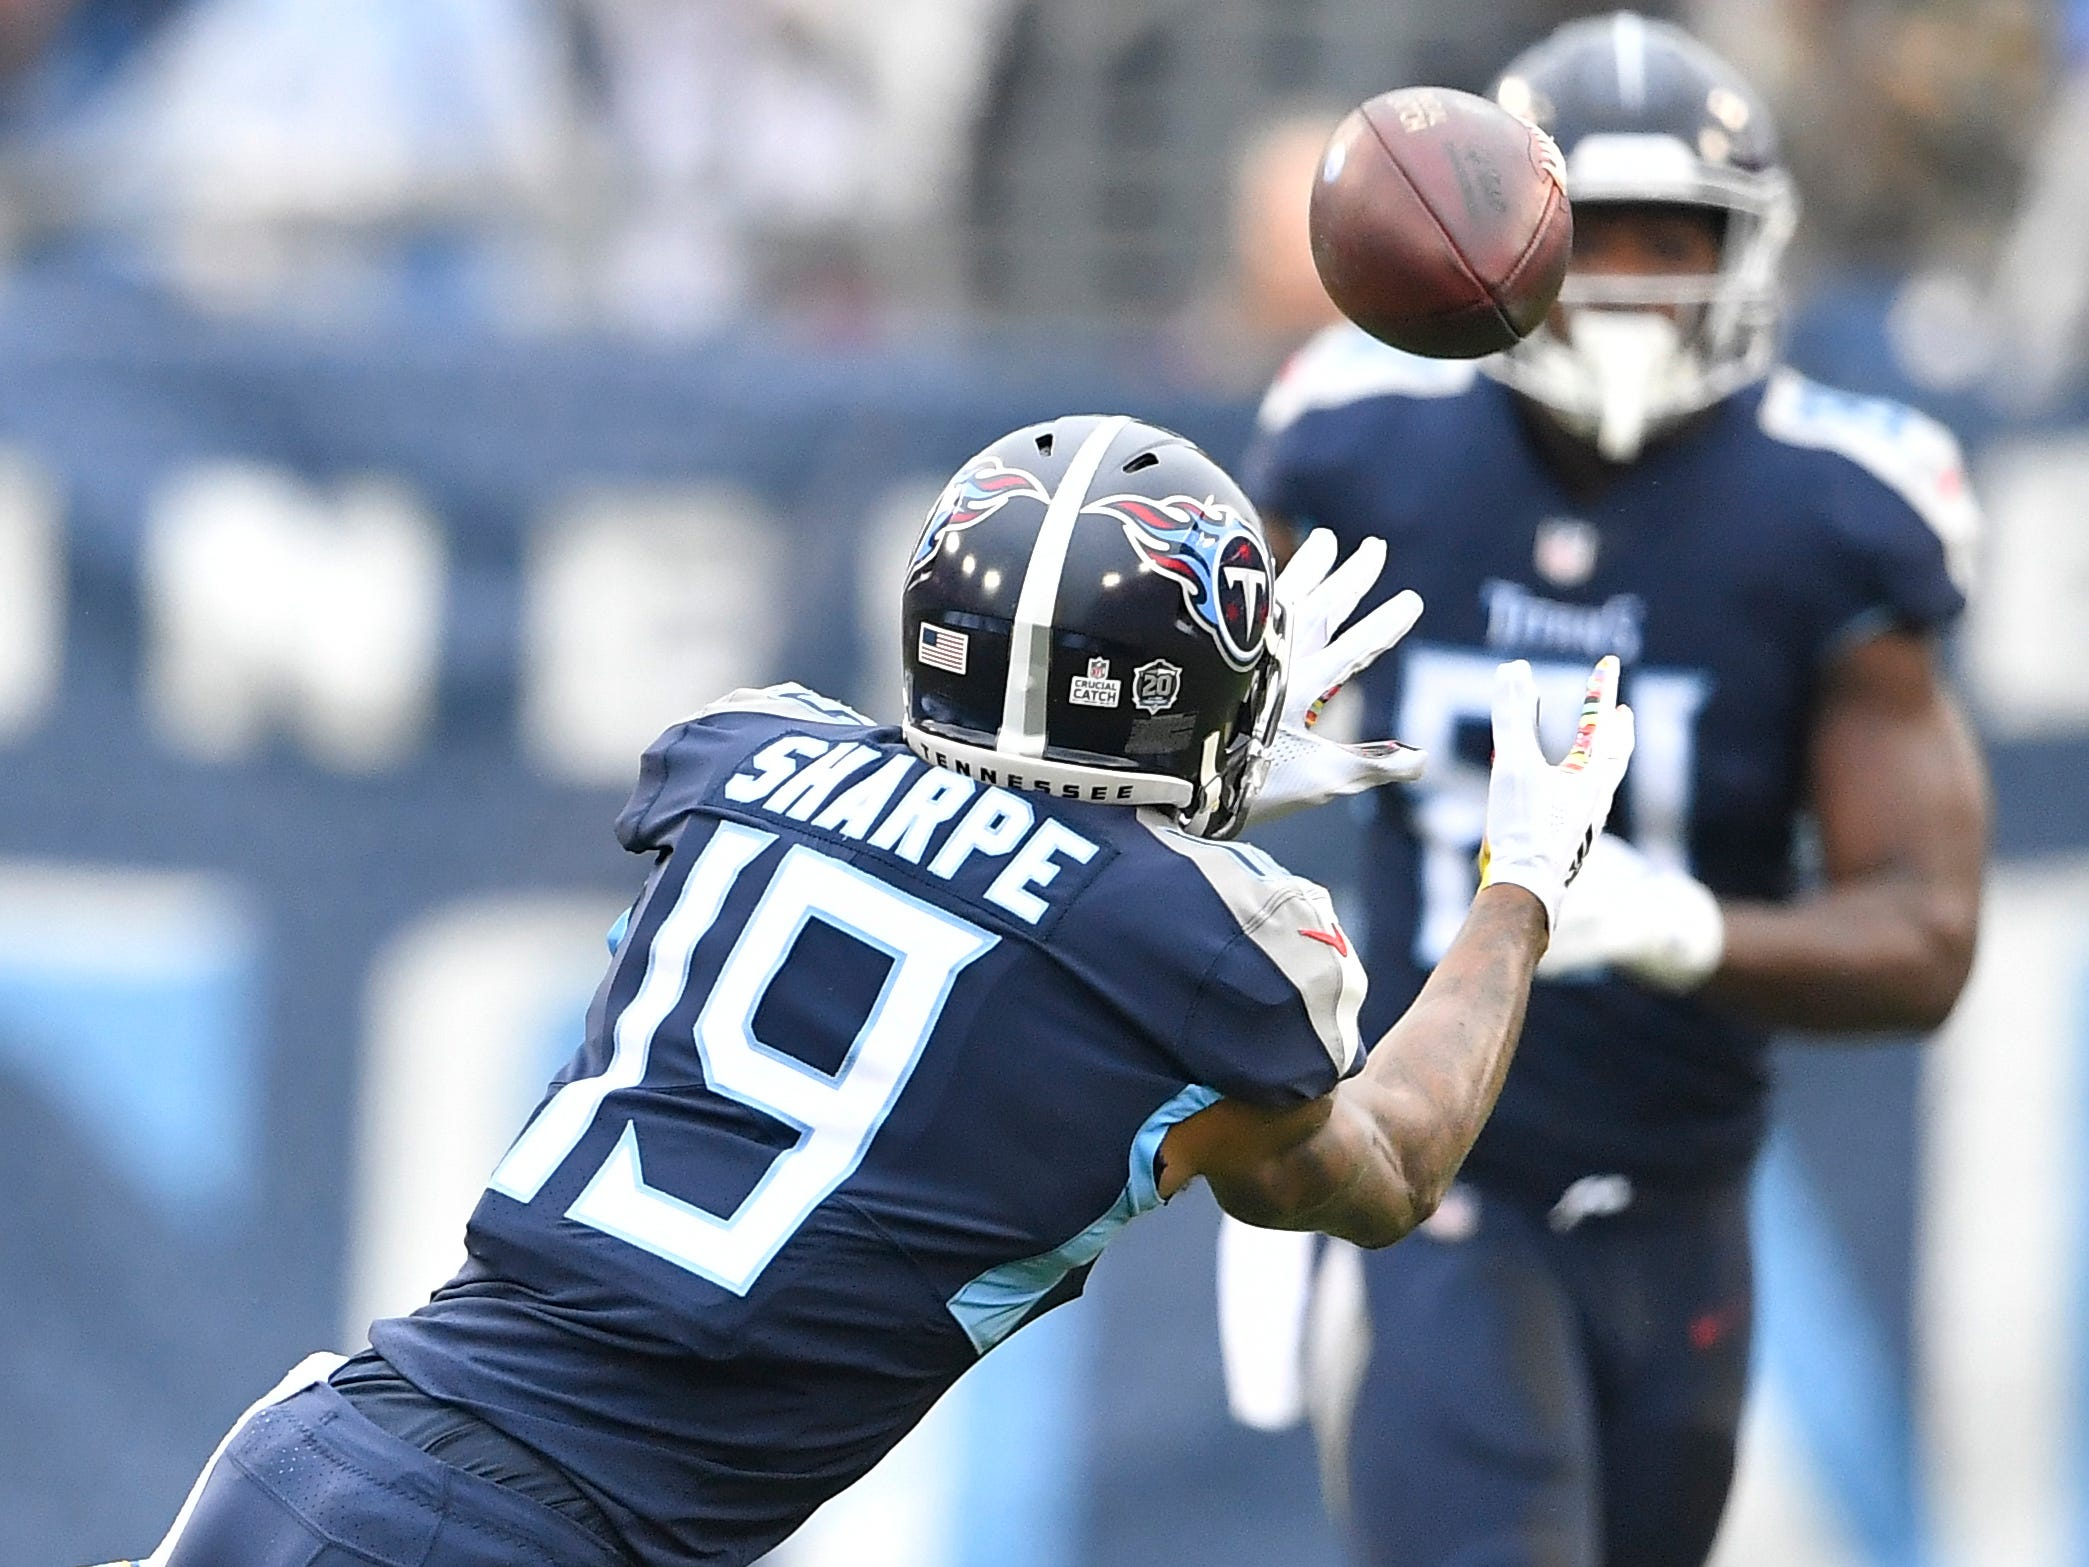 Titans wide receiver Tajae Sharpe (19) makes a catch from quarterback Marcus Mariota (8) in the first quarter at Nissan Stadium Sunday, Oct. 14, 2018, in Nashville, Tenn.